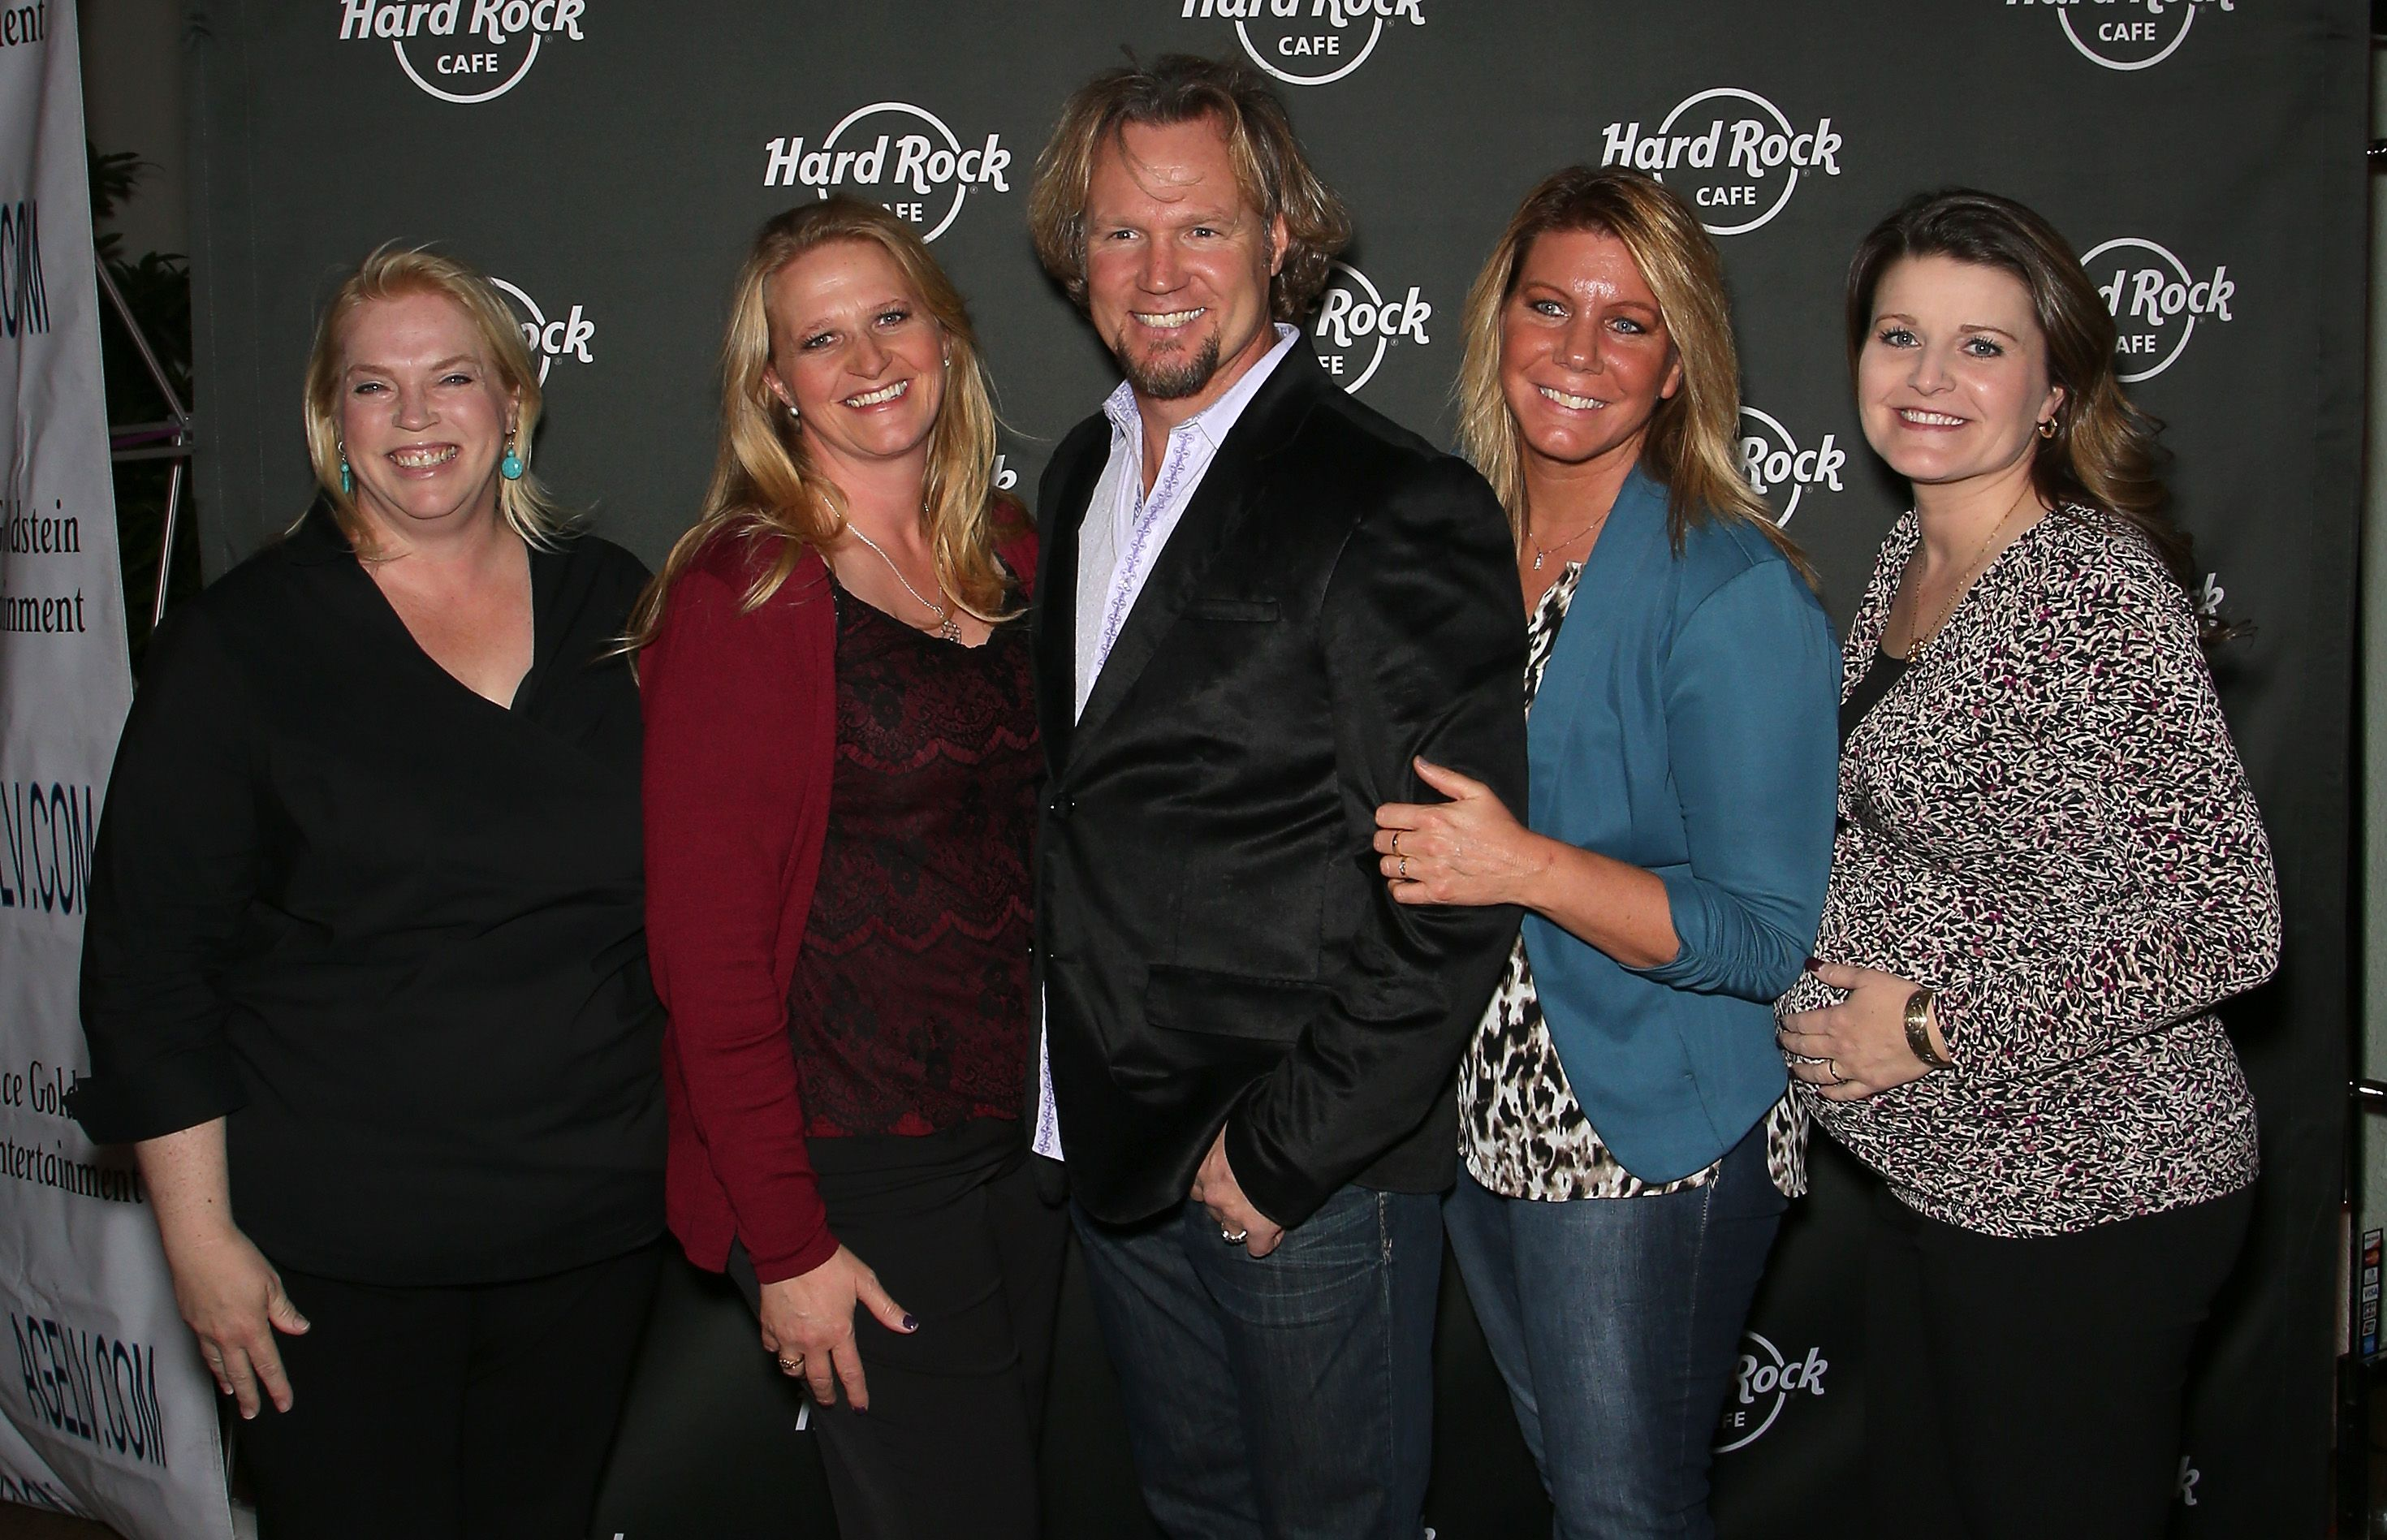 Kody Brown and his wives at Hard Rock Cafe Las Vegas at Hard Rock Hotel's 25th anniversary celebration on October 10, 2015 | Photo: Getty Images